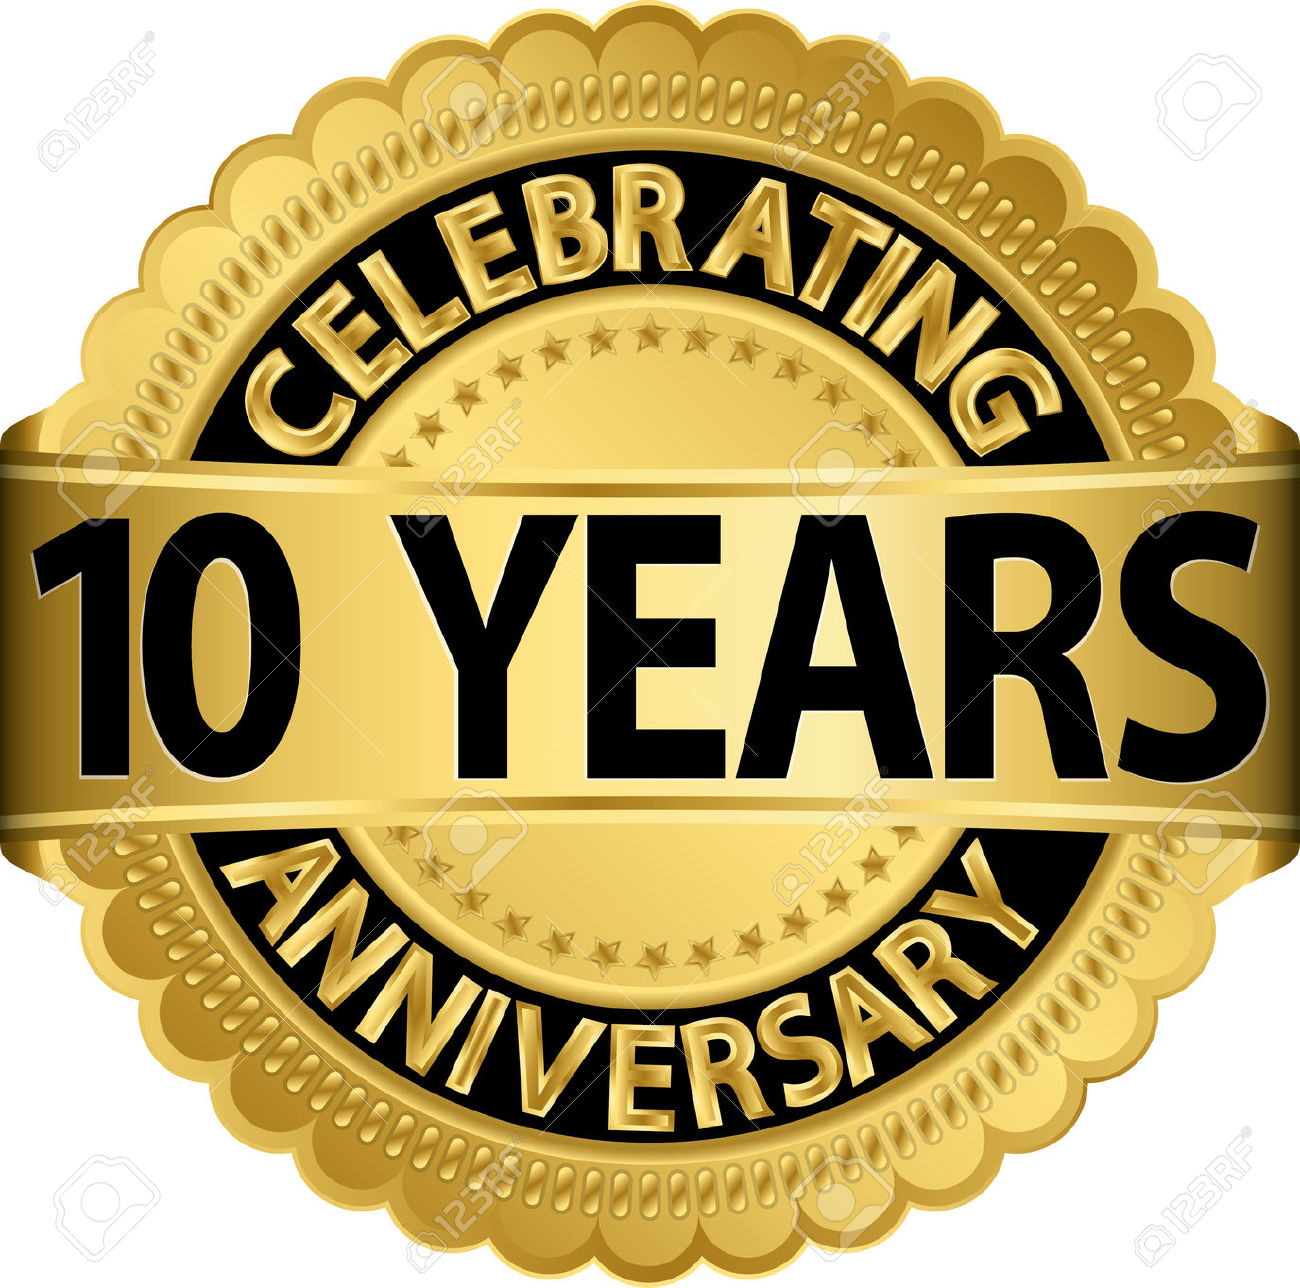 1 year anniversary celebration clipart - ClipartFest graphic black and white